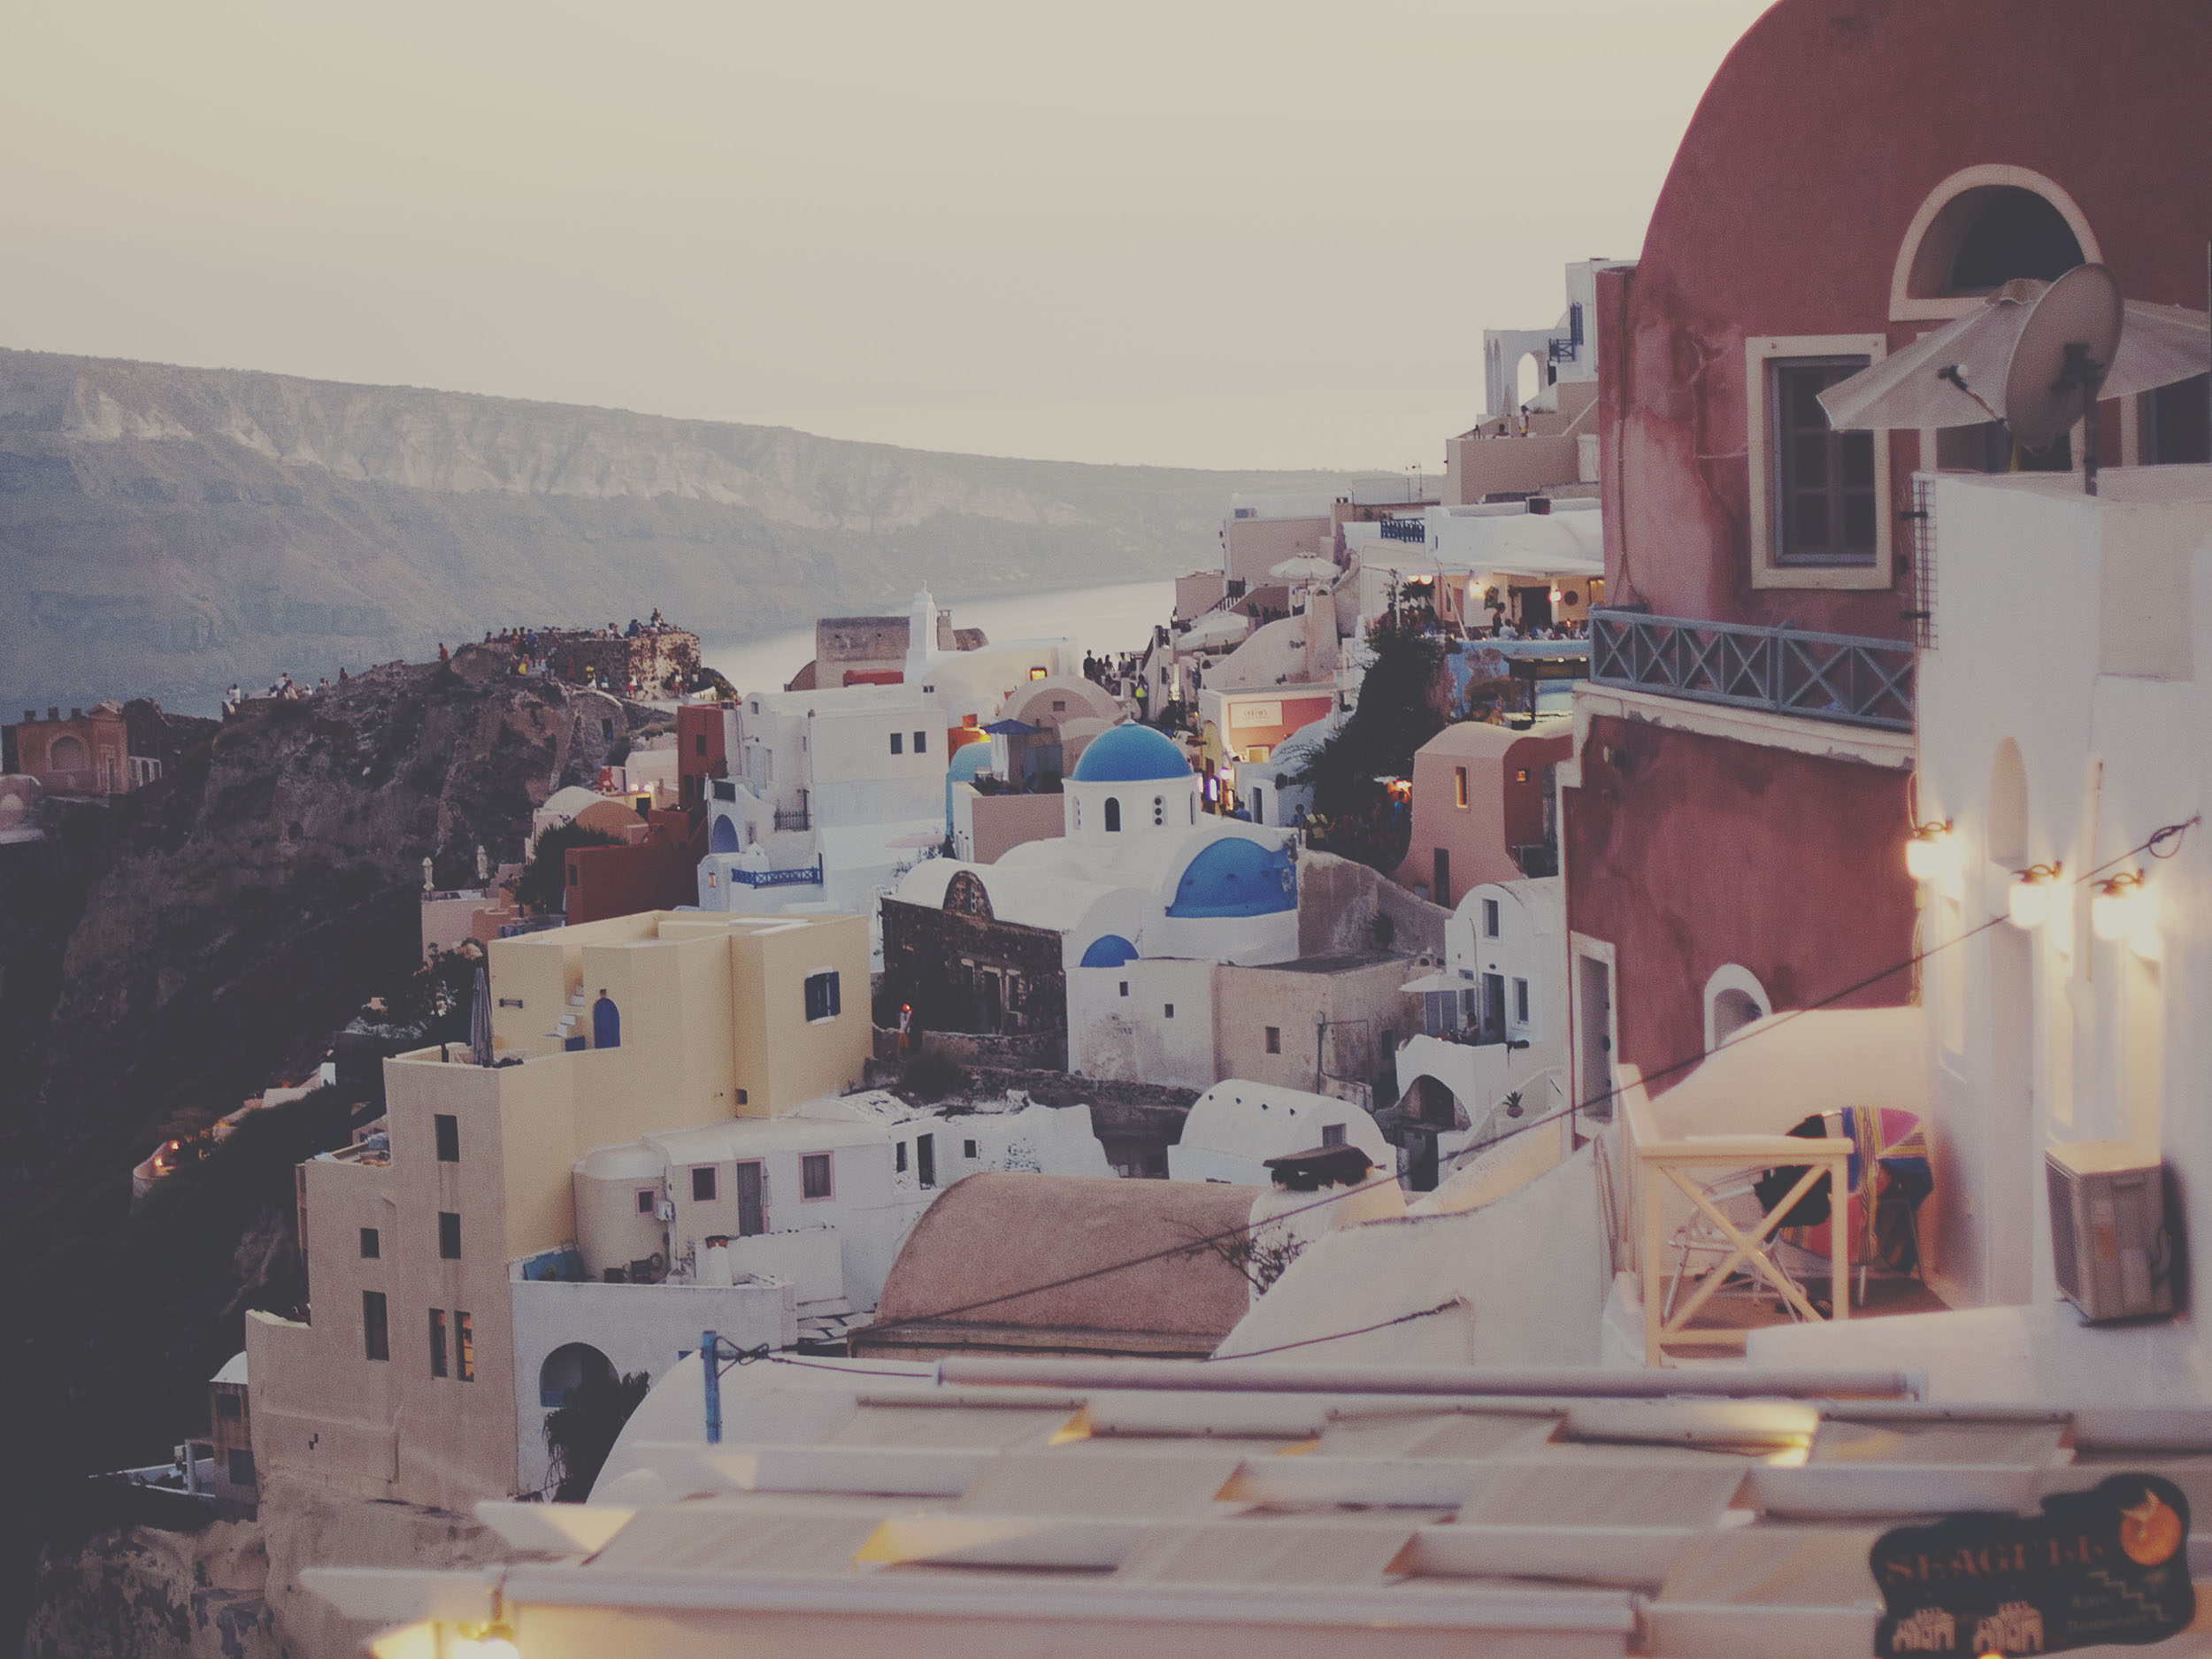 Santorini photo diary by Ragnhild Utne